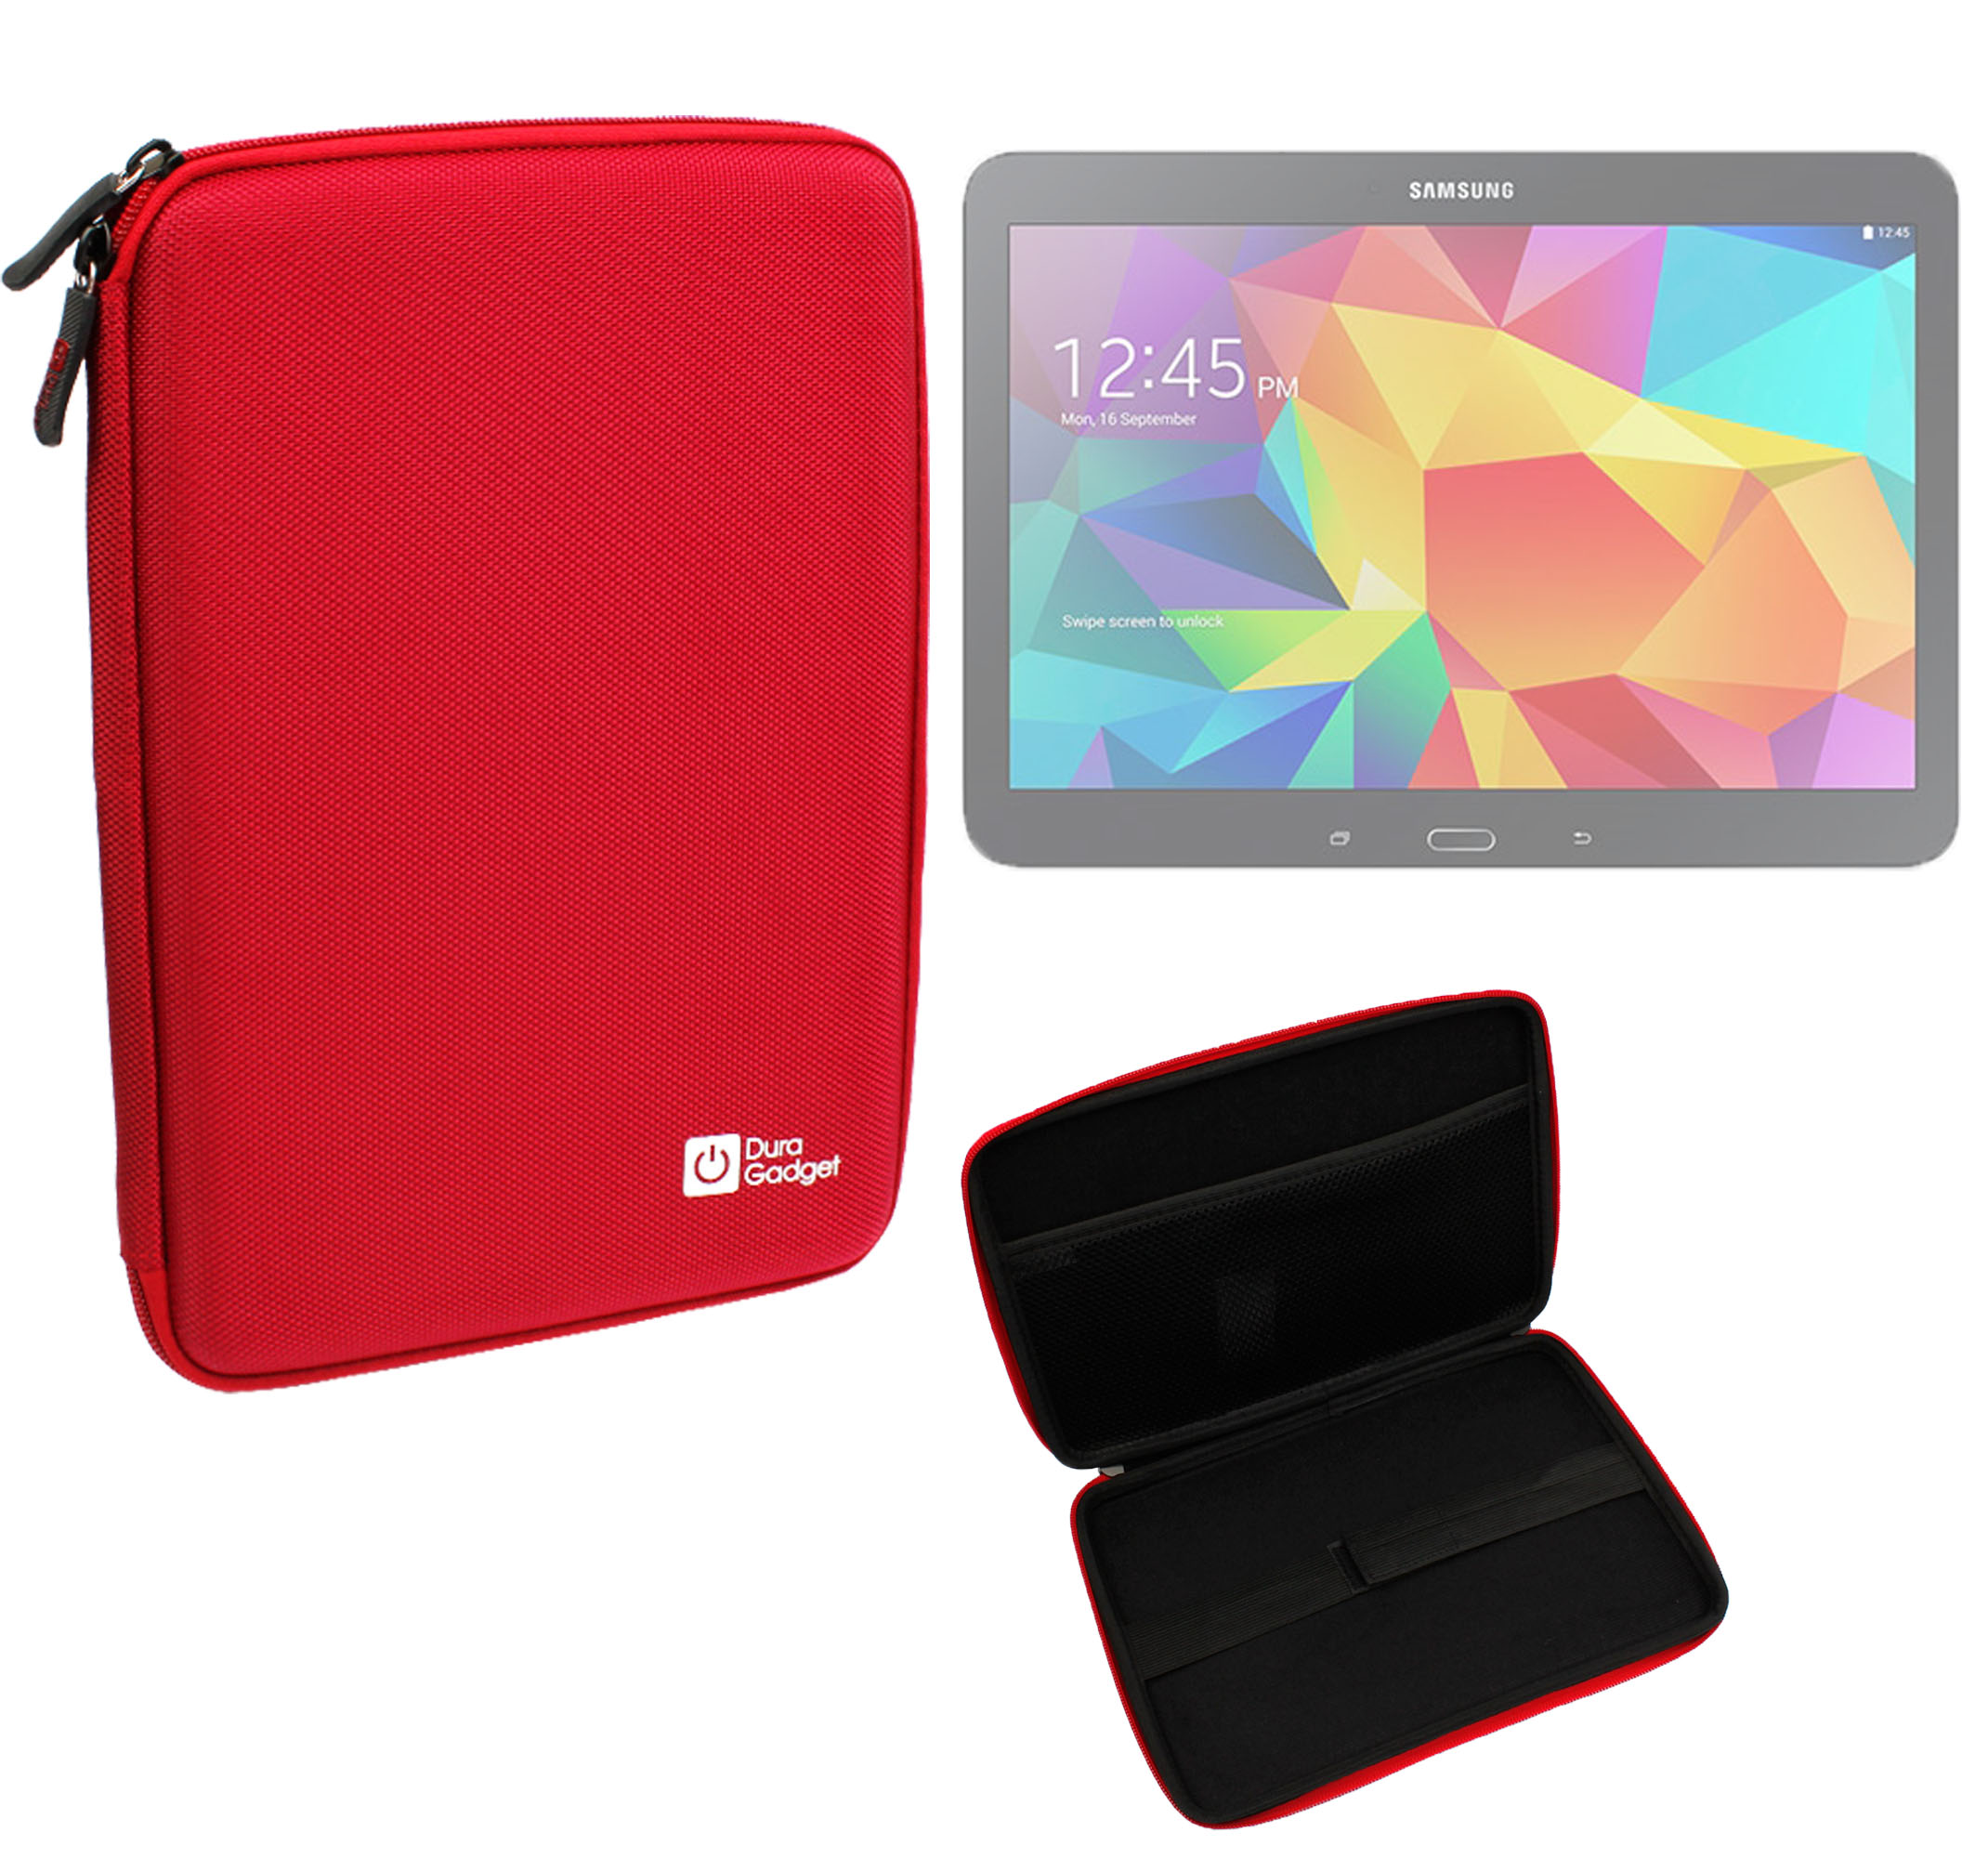 Etui coque rouge pour tablette samsung galaxy tab 4 10 1 for Housse tablette samsung